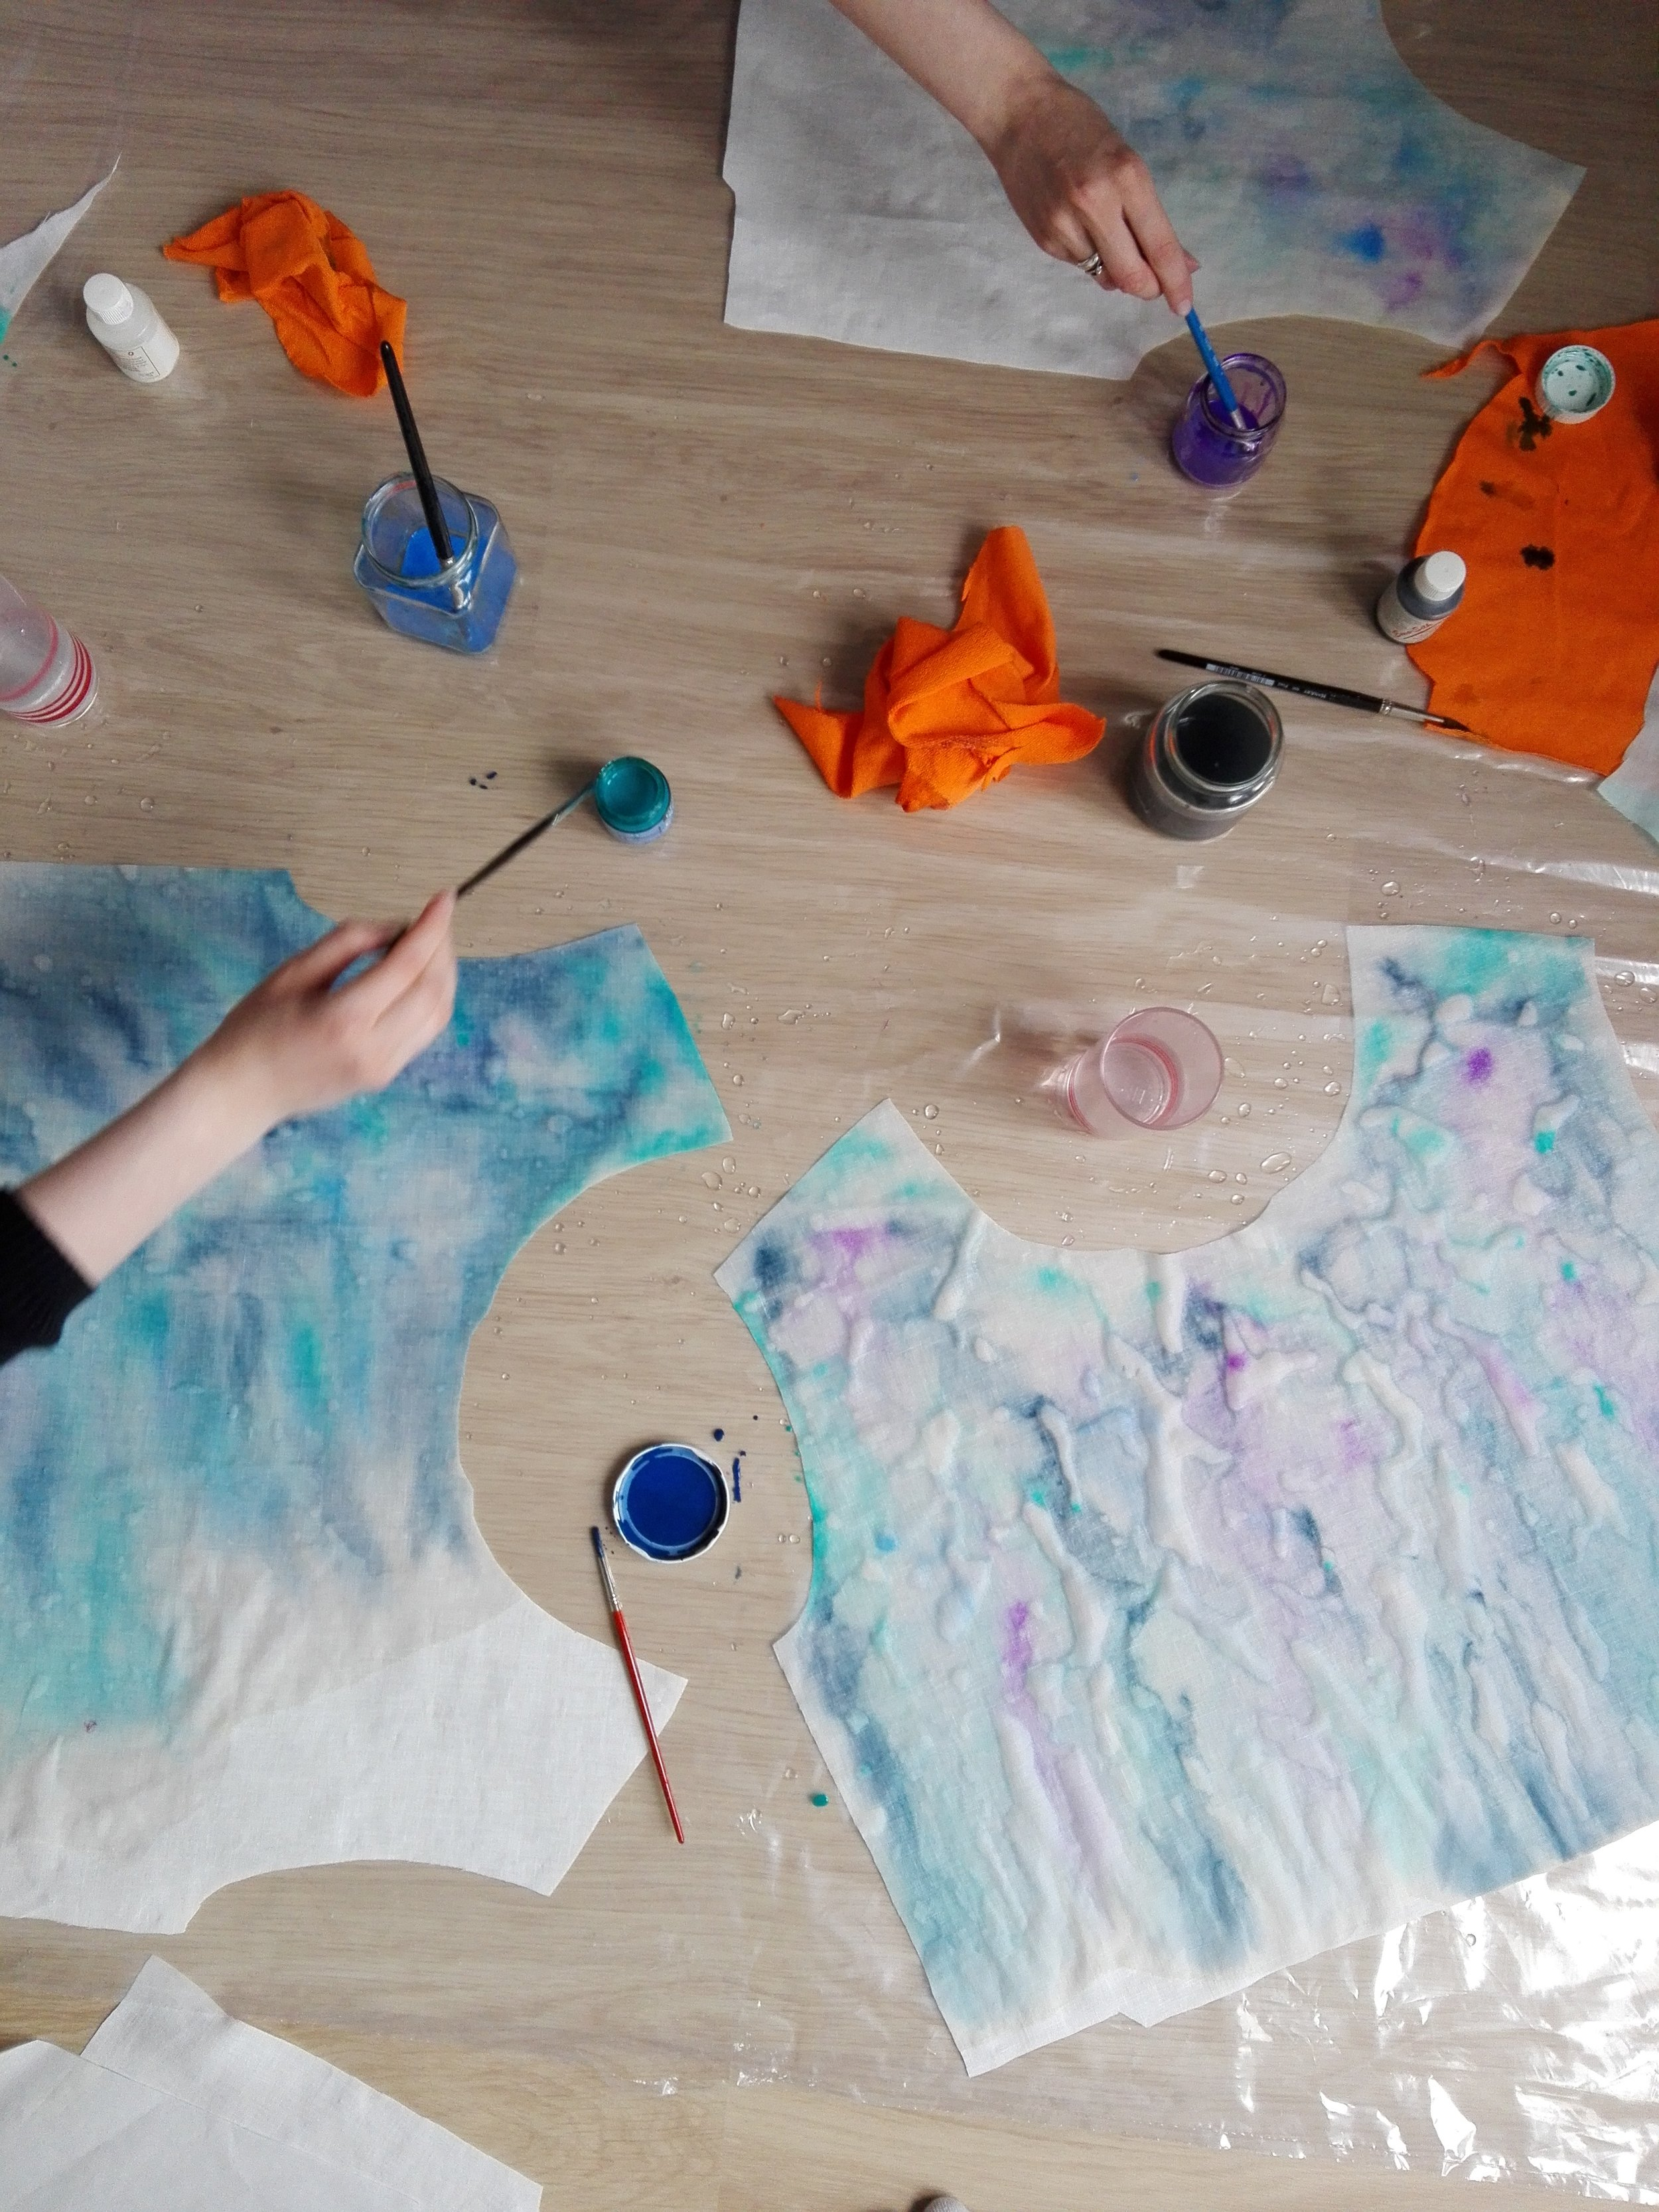 Watercolor shirts in the making. Photo by Essi